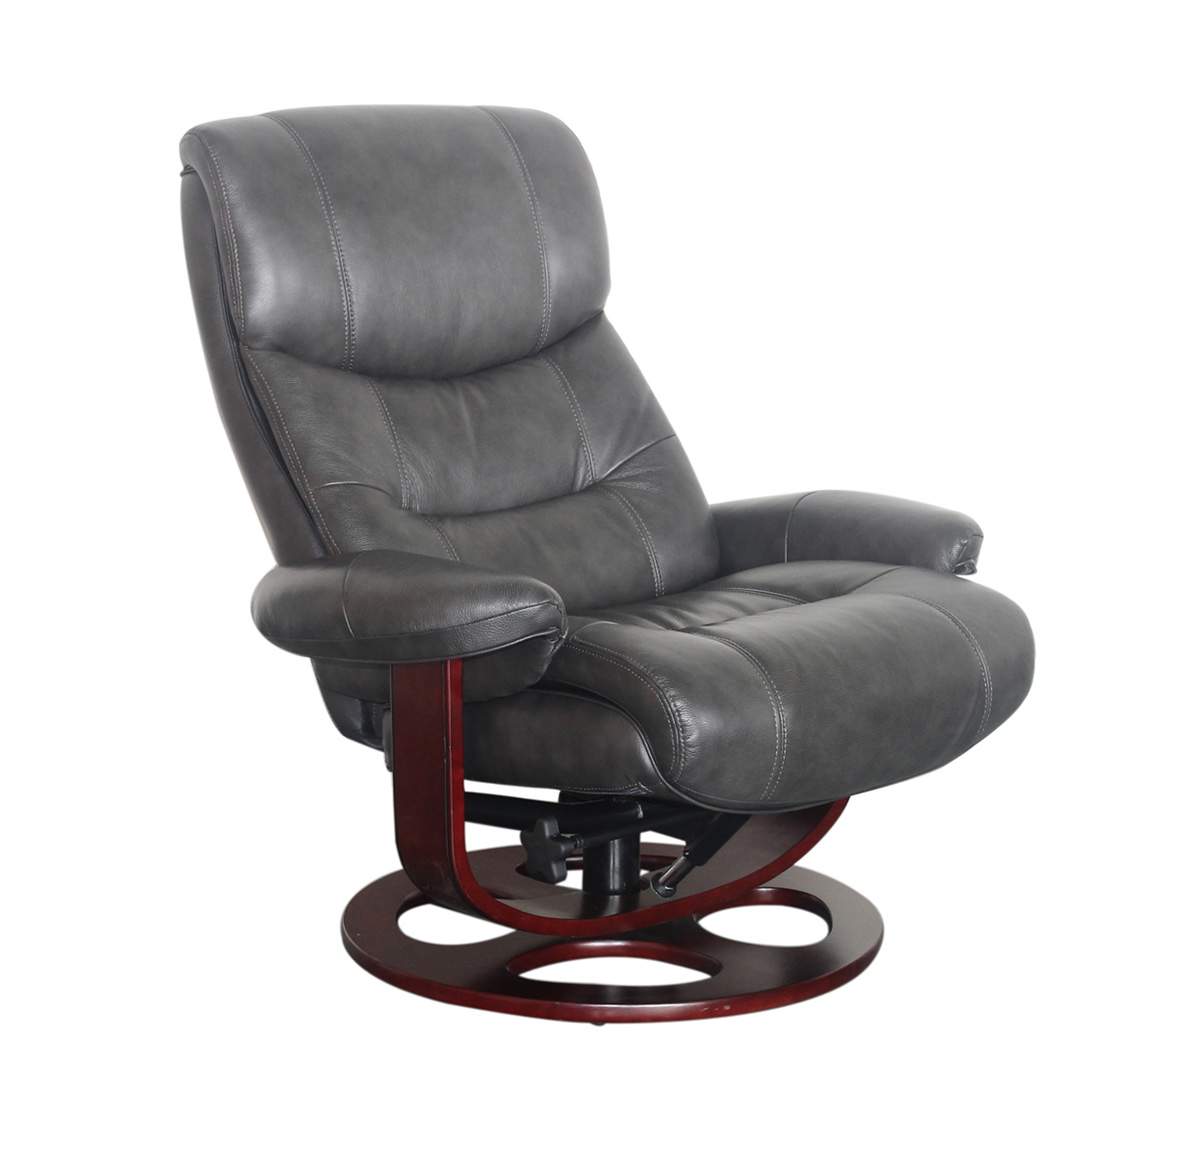 Barcalounger Dawson Pedestal Recliner Chair and Ottoman - Chelsea Graphite/Leather Match